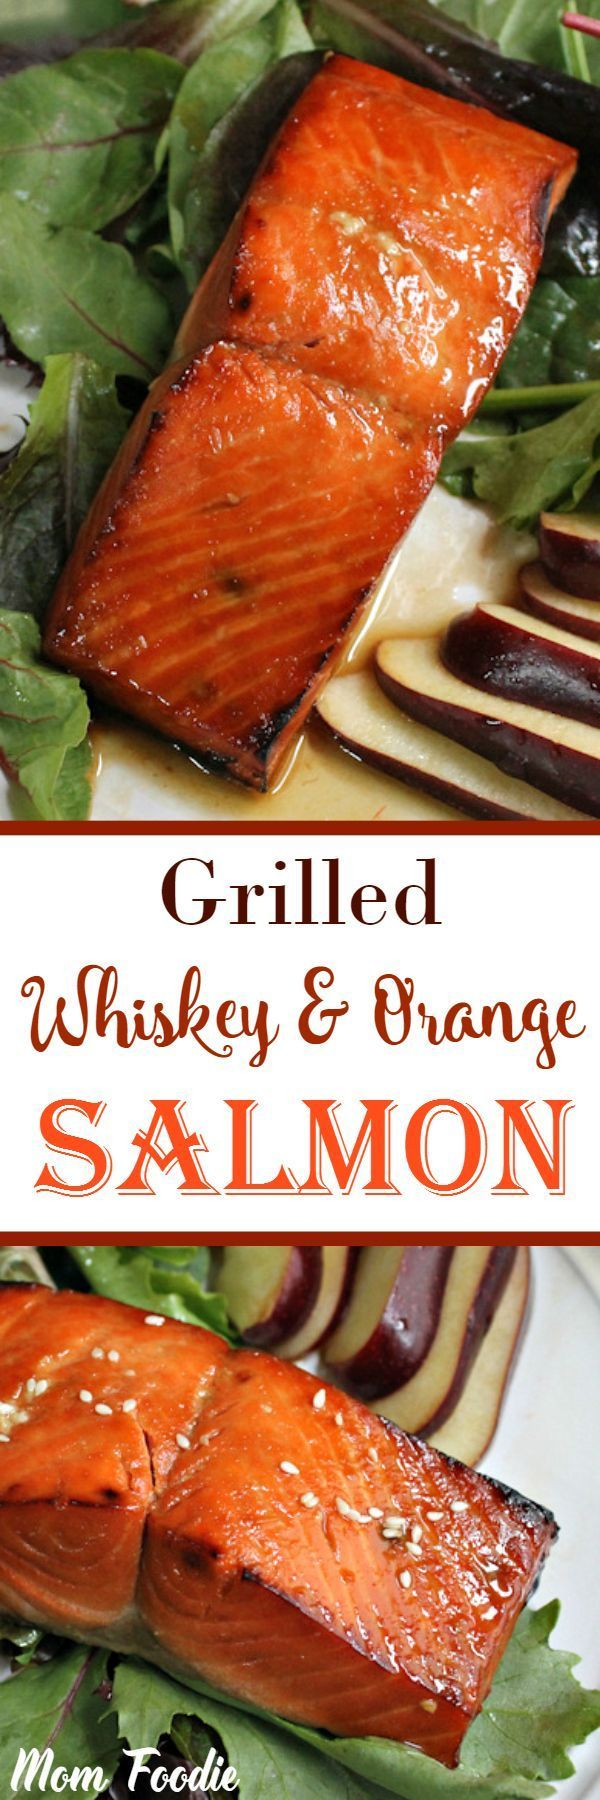 Whiskey Orange Salmon                                                                                                                                                                                 More